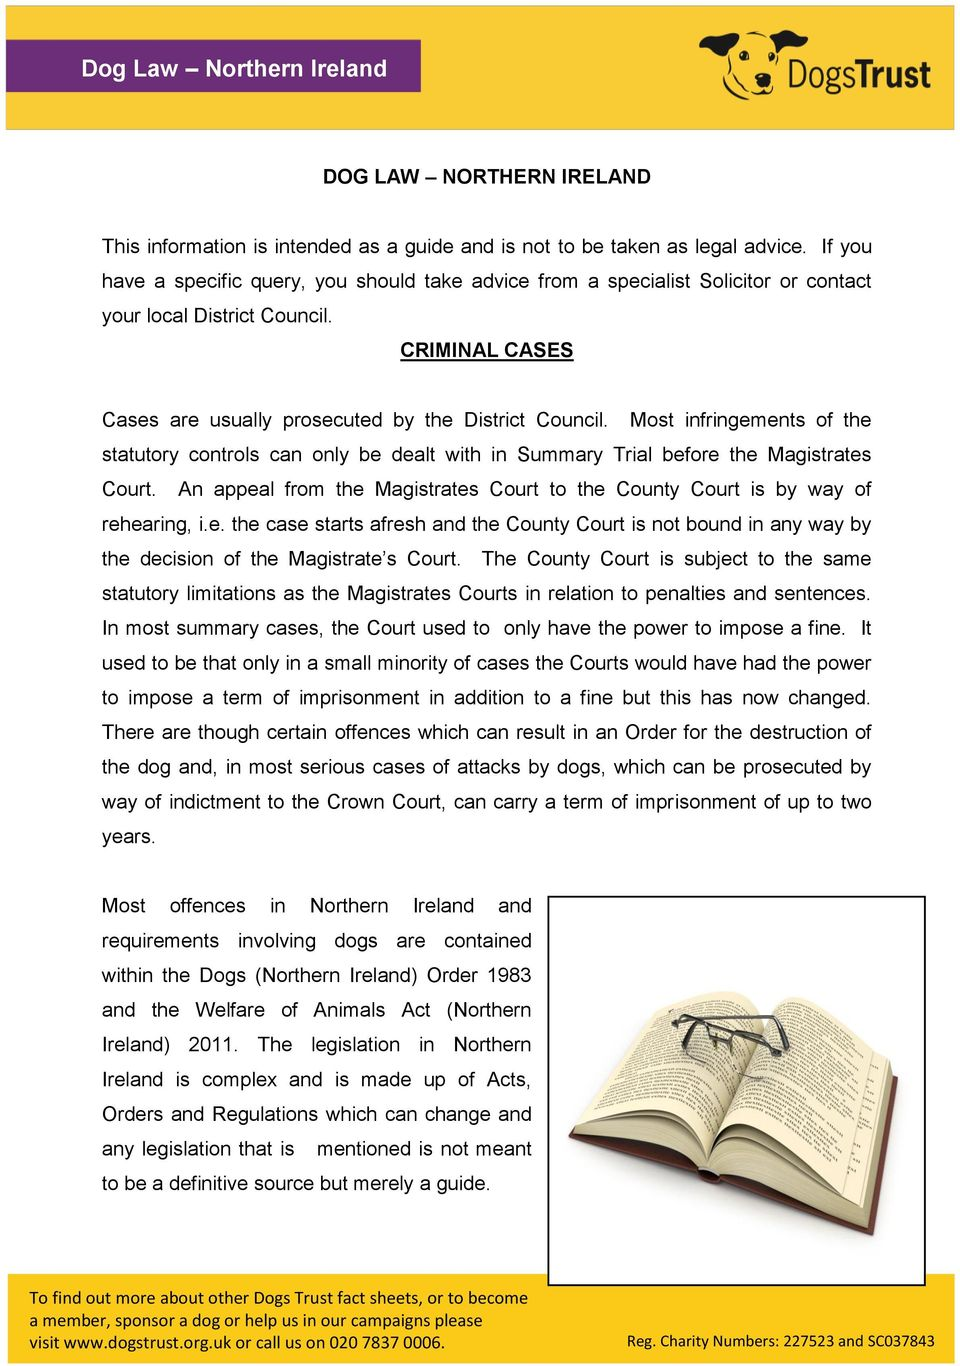 Most infringements of the statutory controls can only be dealt with in Summary Trial before the Magistrates Court. An appeal from the Magistrates Court to the County Court is by way of rehearing, i.e. the case starts afresh and the County Court is not bound in any way by the decision of the Magistrate s Court.